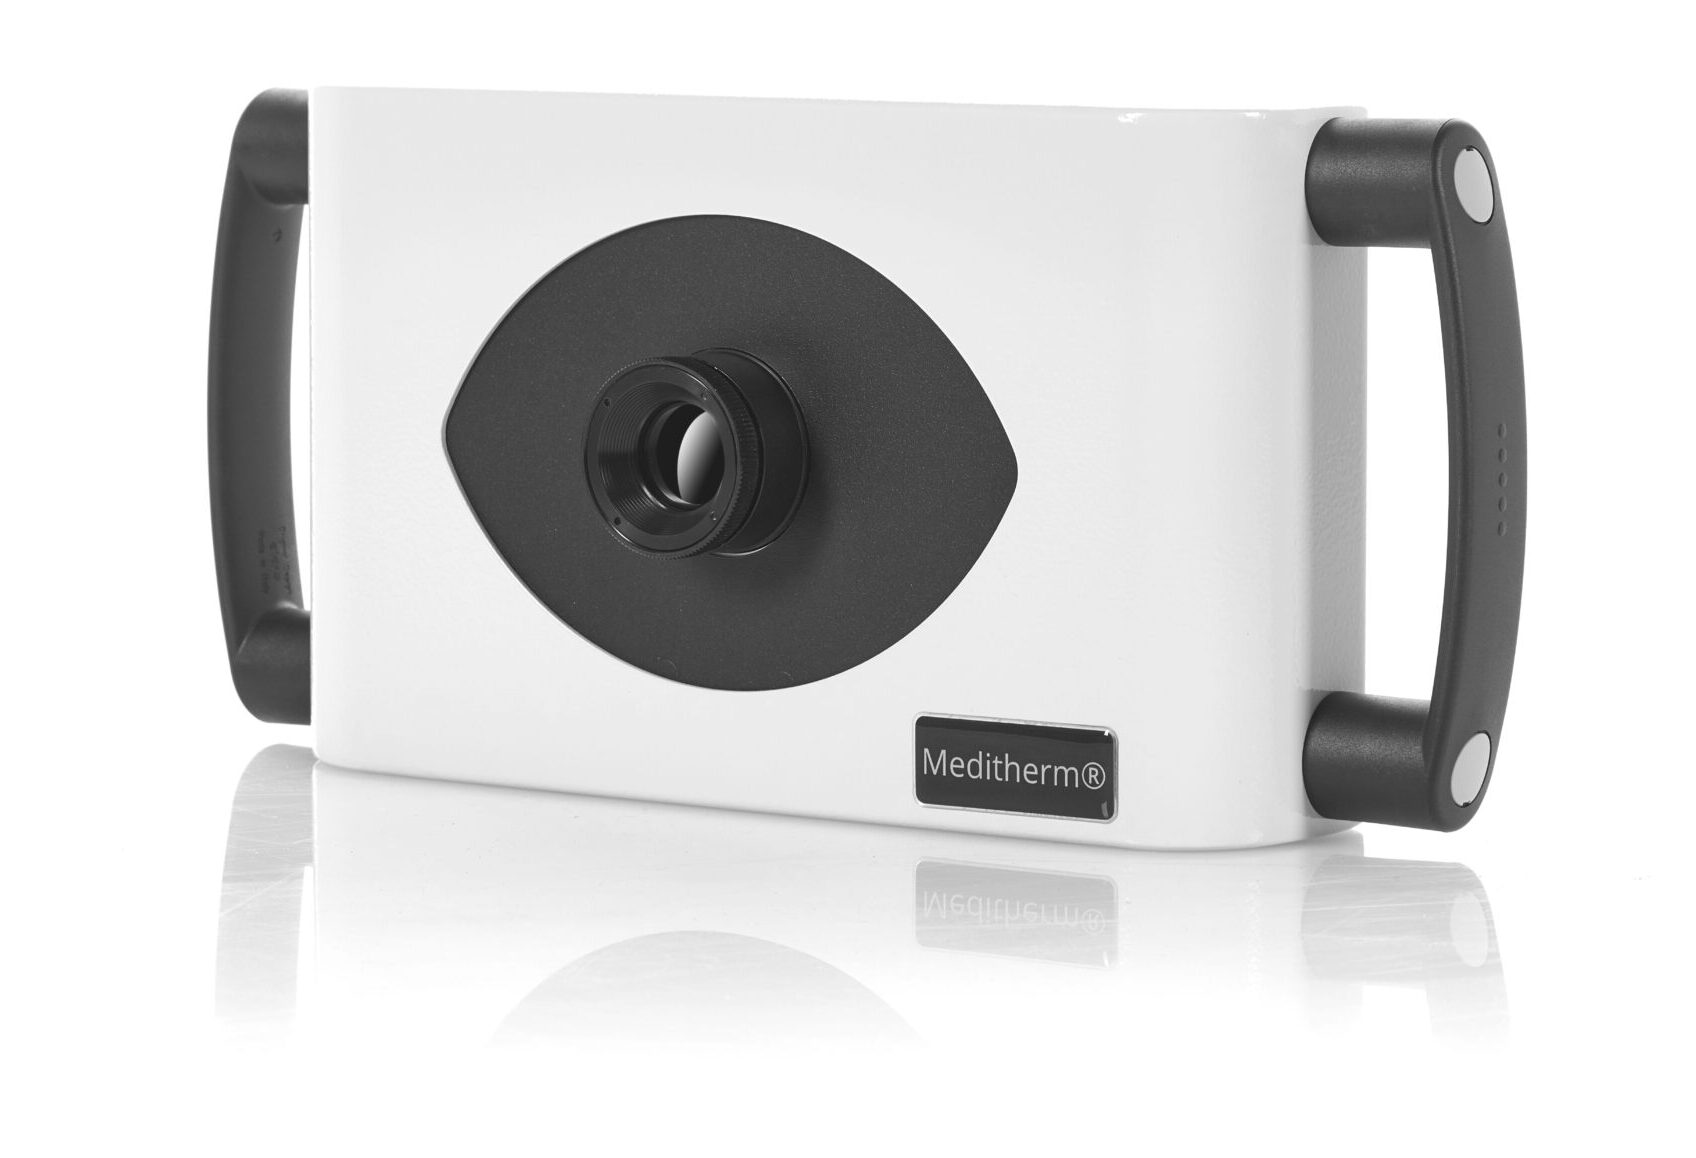 Meditherm Iris 360 Thermal Imaging Camera